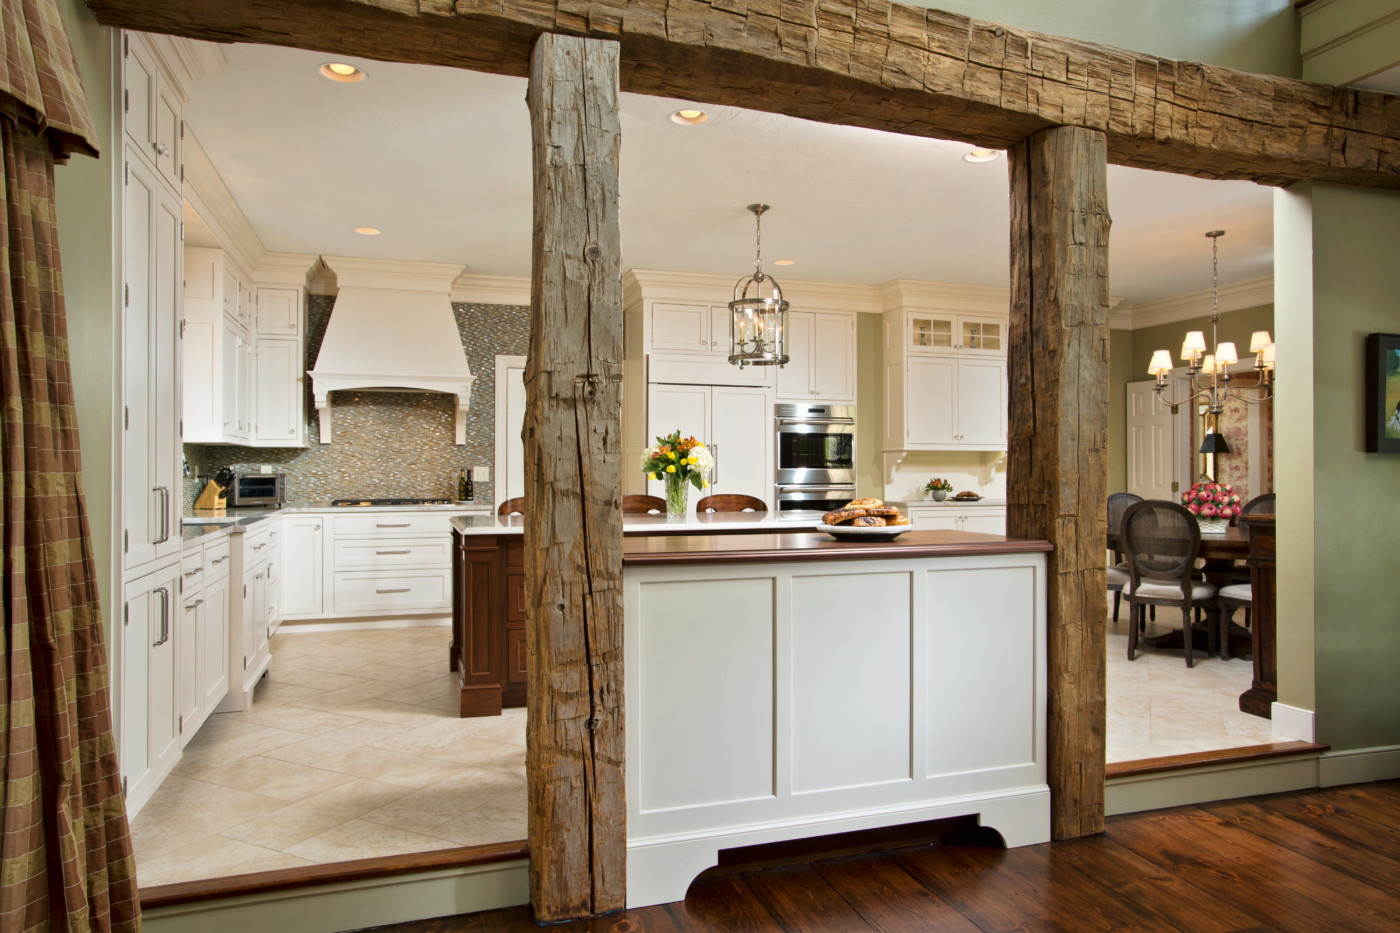 Gathering E Kitchen Renovation Exposed Beams